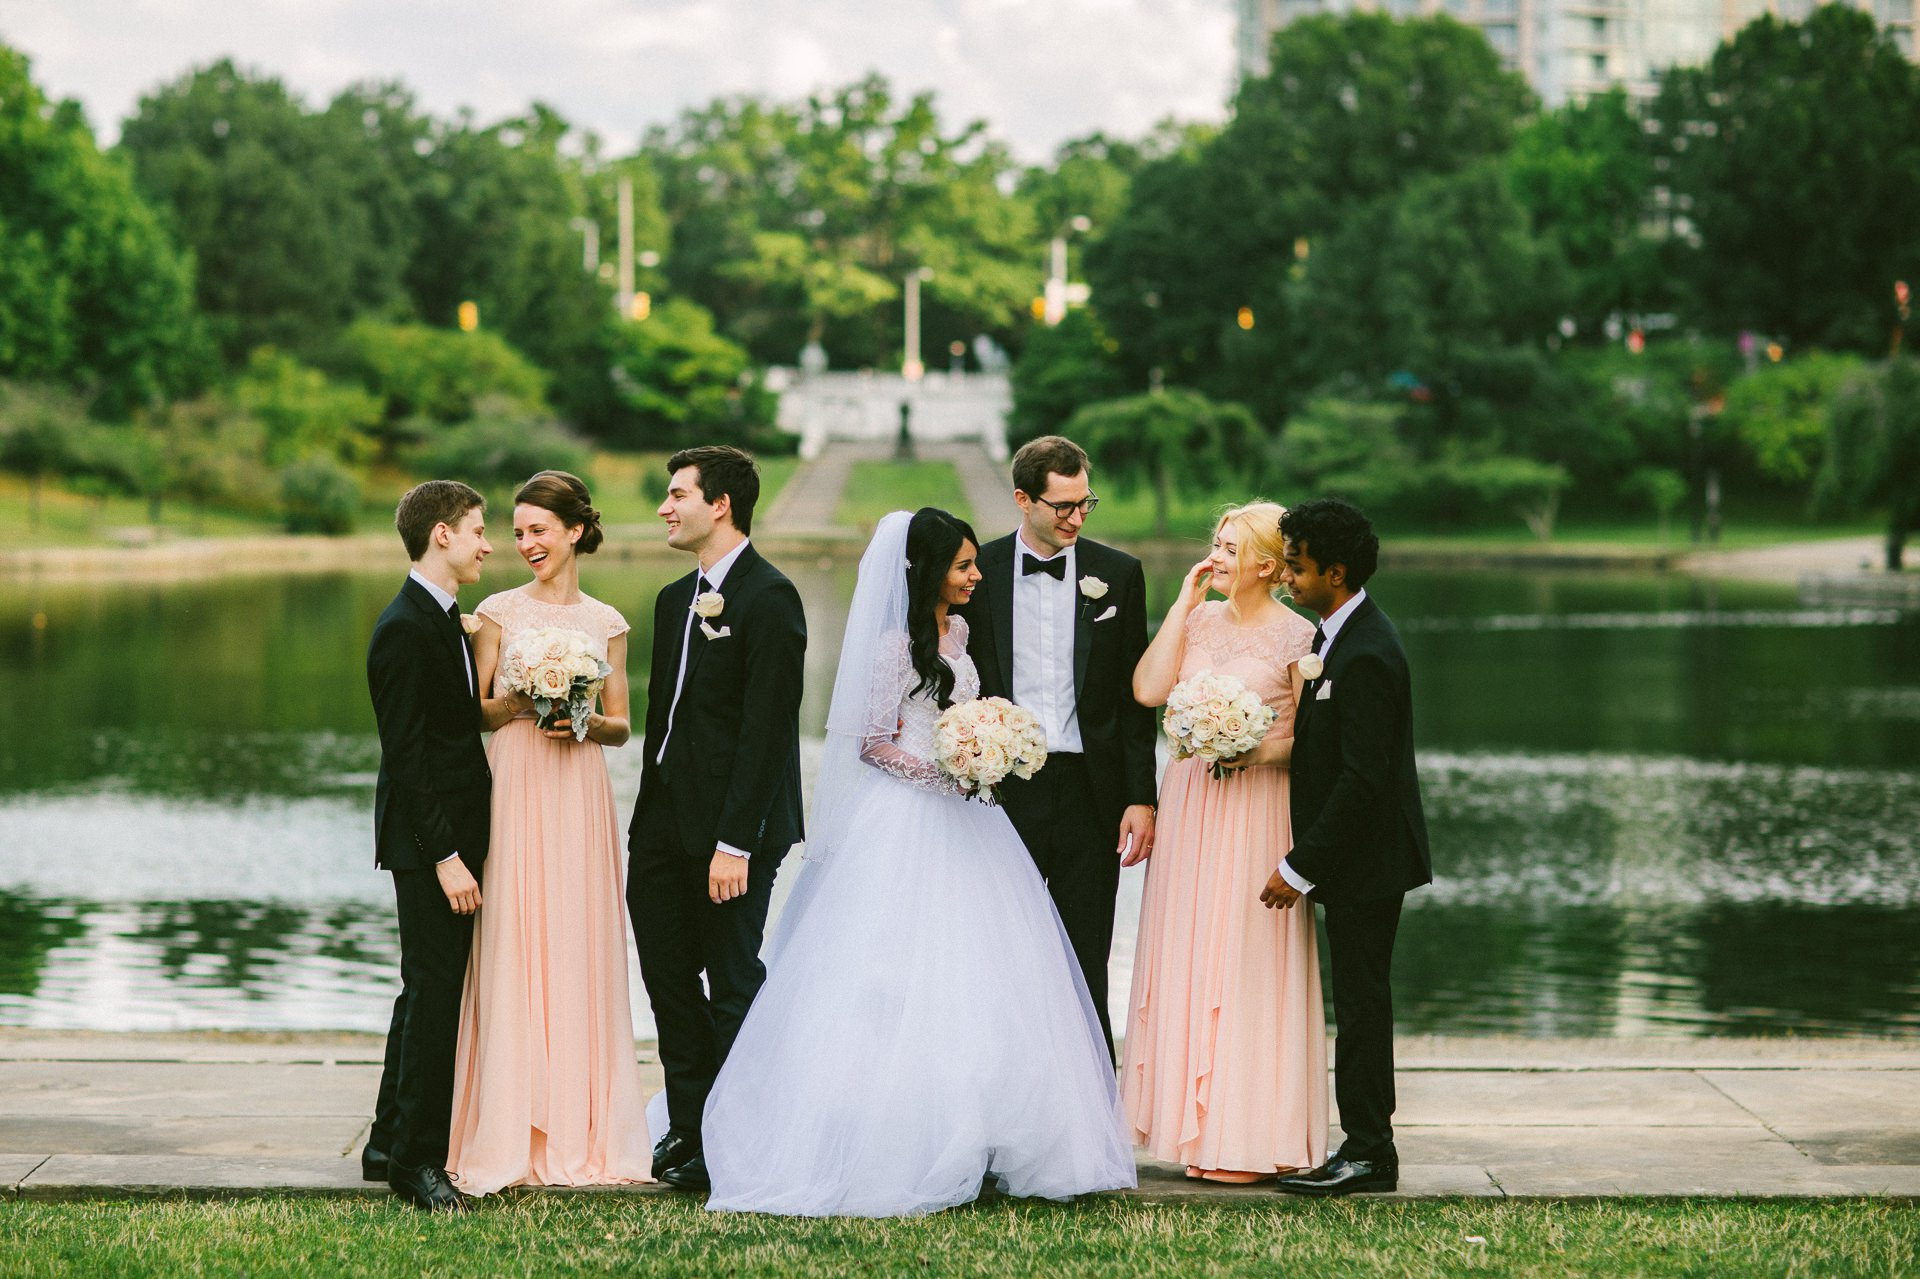 Severance Hall Wedding Photographer in Cleveland 38.jpg